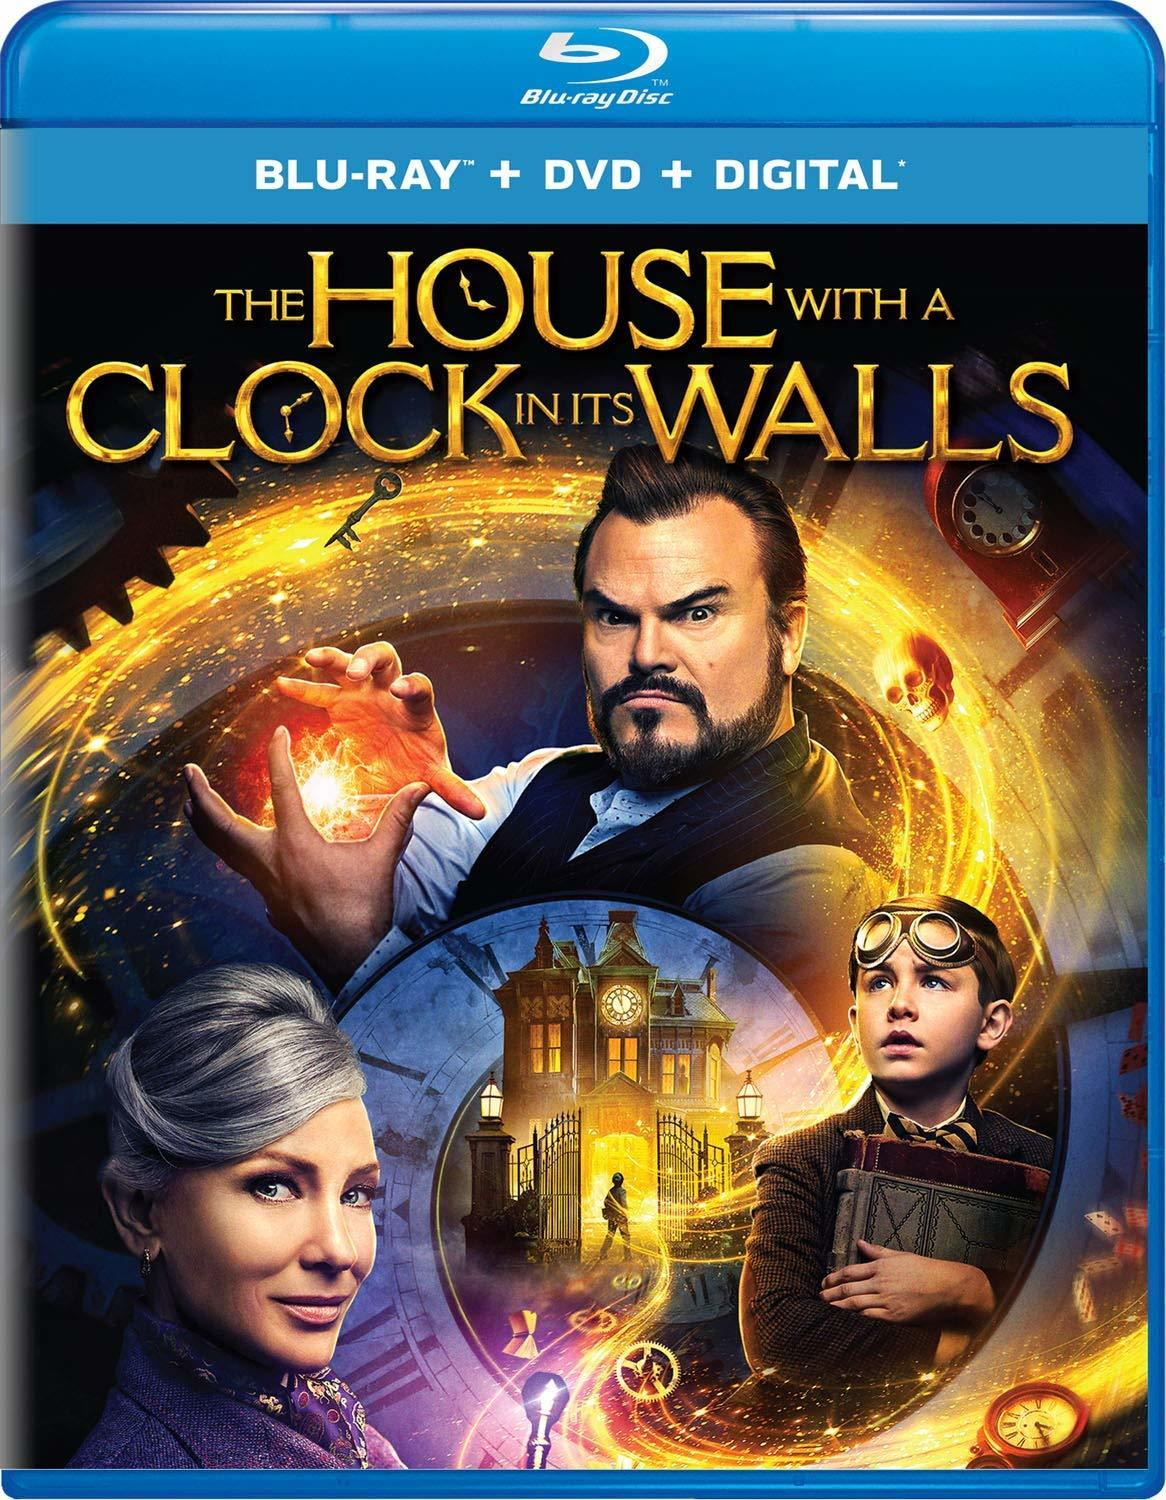 The House with a Clock in Its Walls (2018) poster image